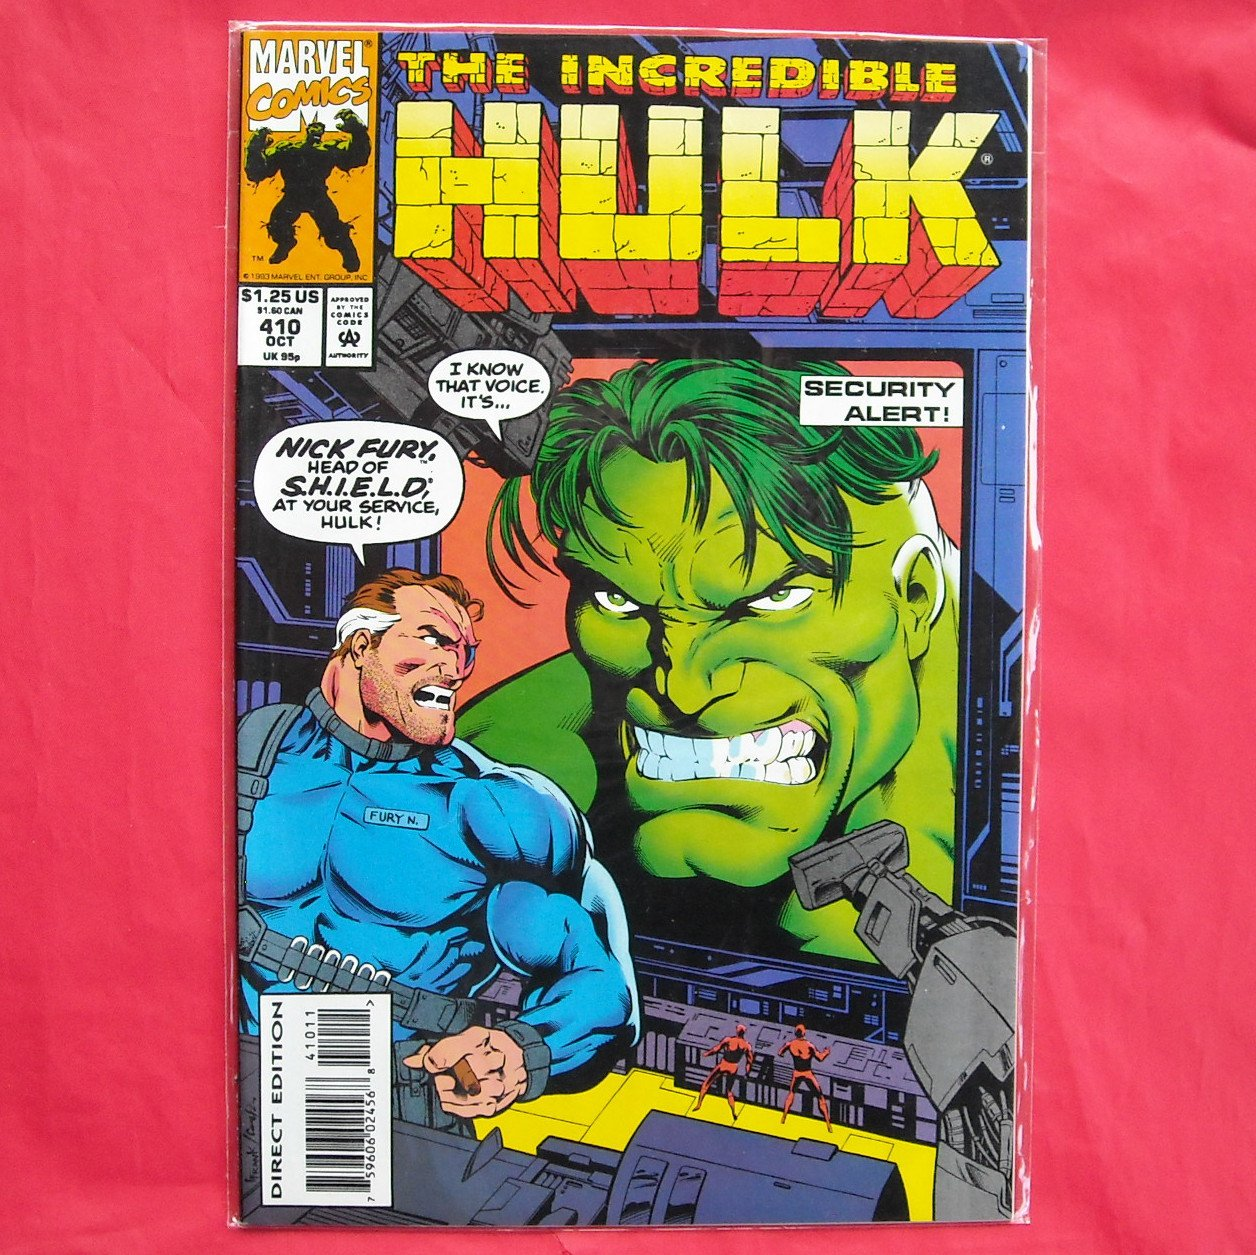 Marvel Comics Incredible Hulk Security Alert # 410 1993